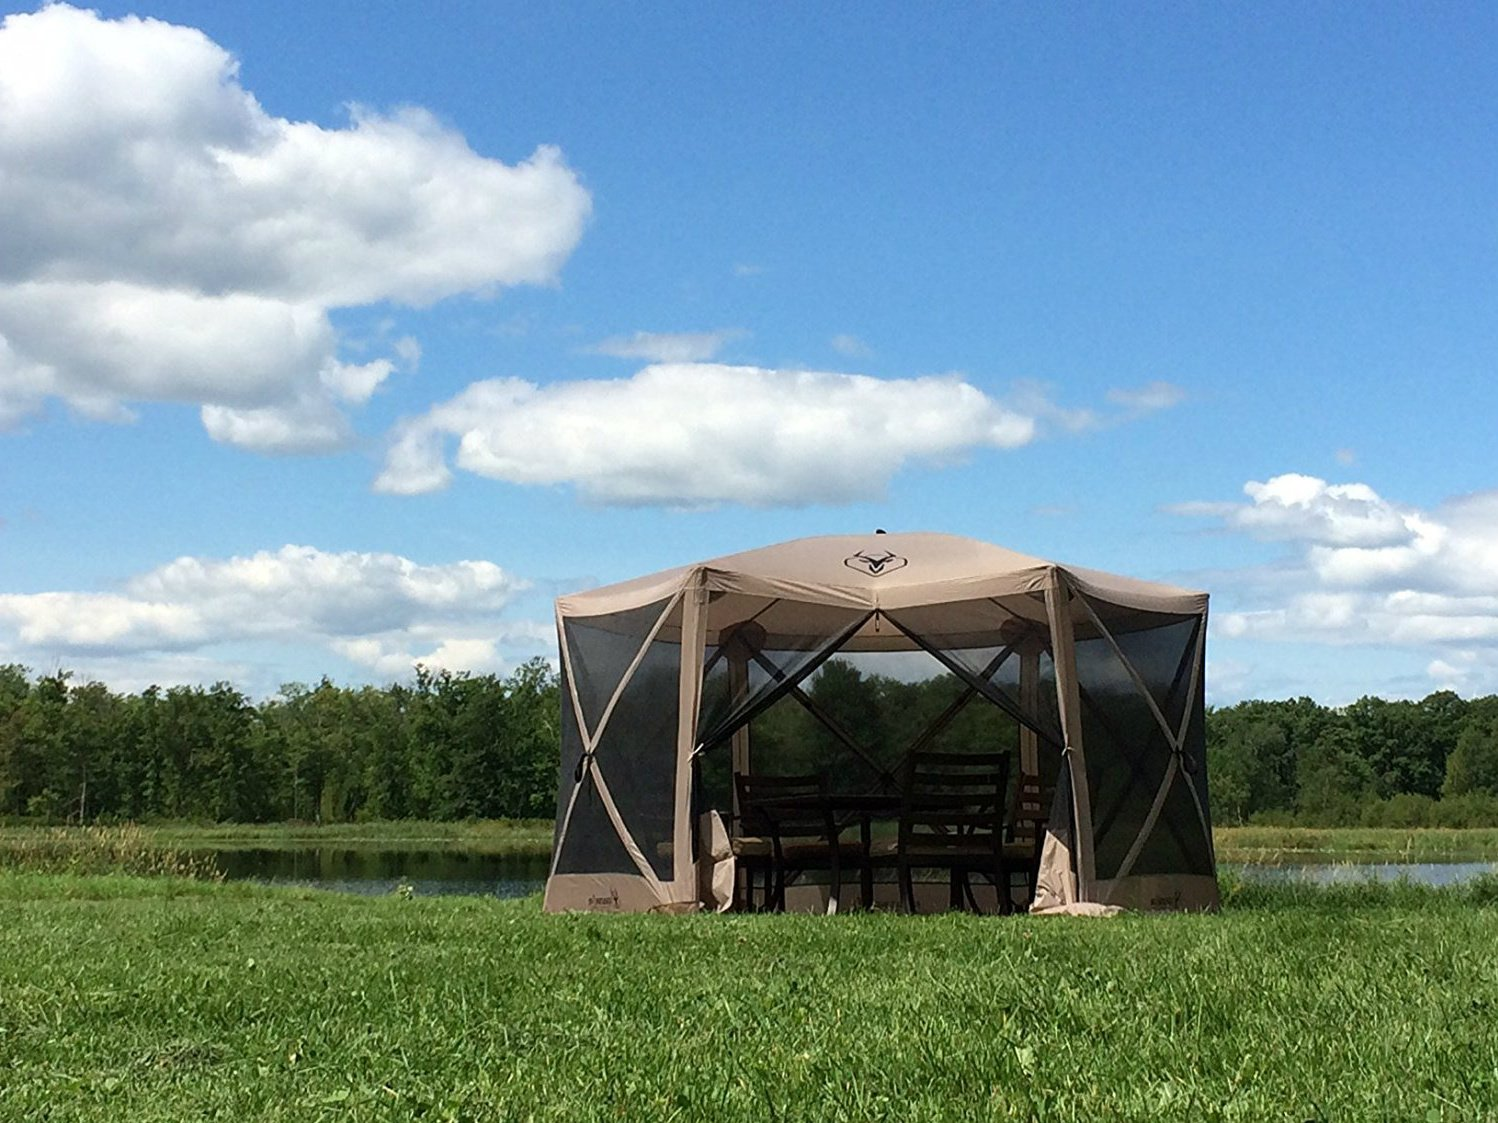 Patio Joy Screened Canopy Tent Portable Gazebo Camping Easy Up Outdoor Gazebos for Picnic Hiking Sun Shelters